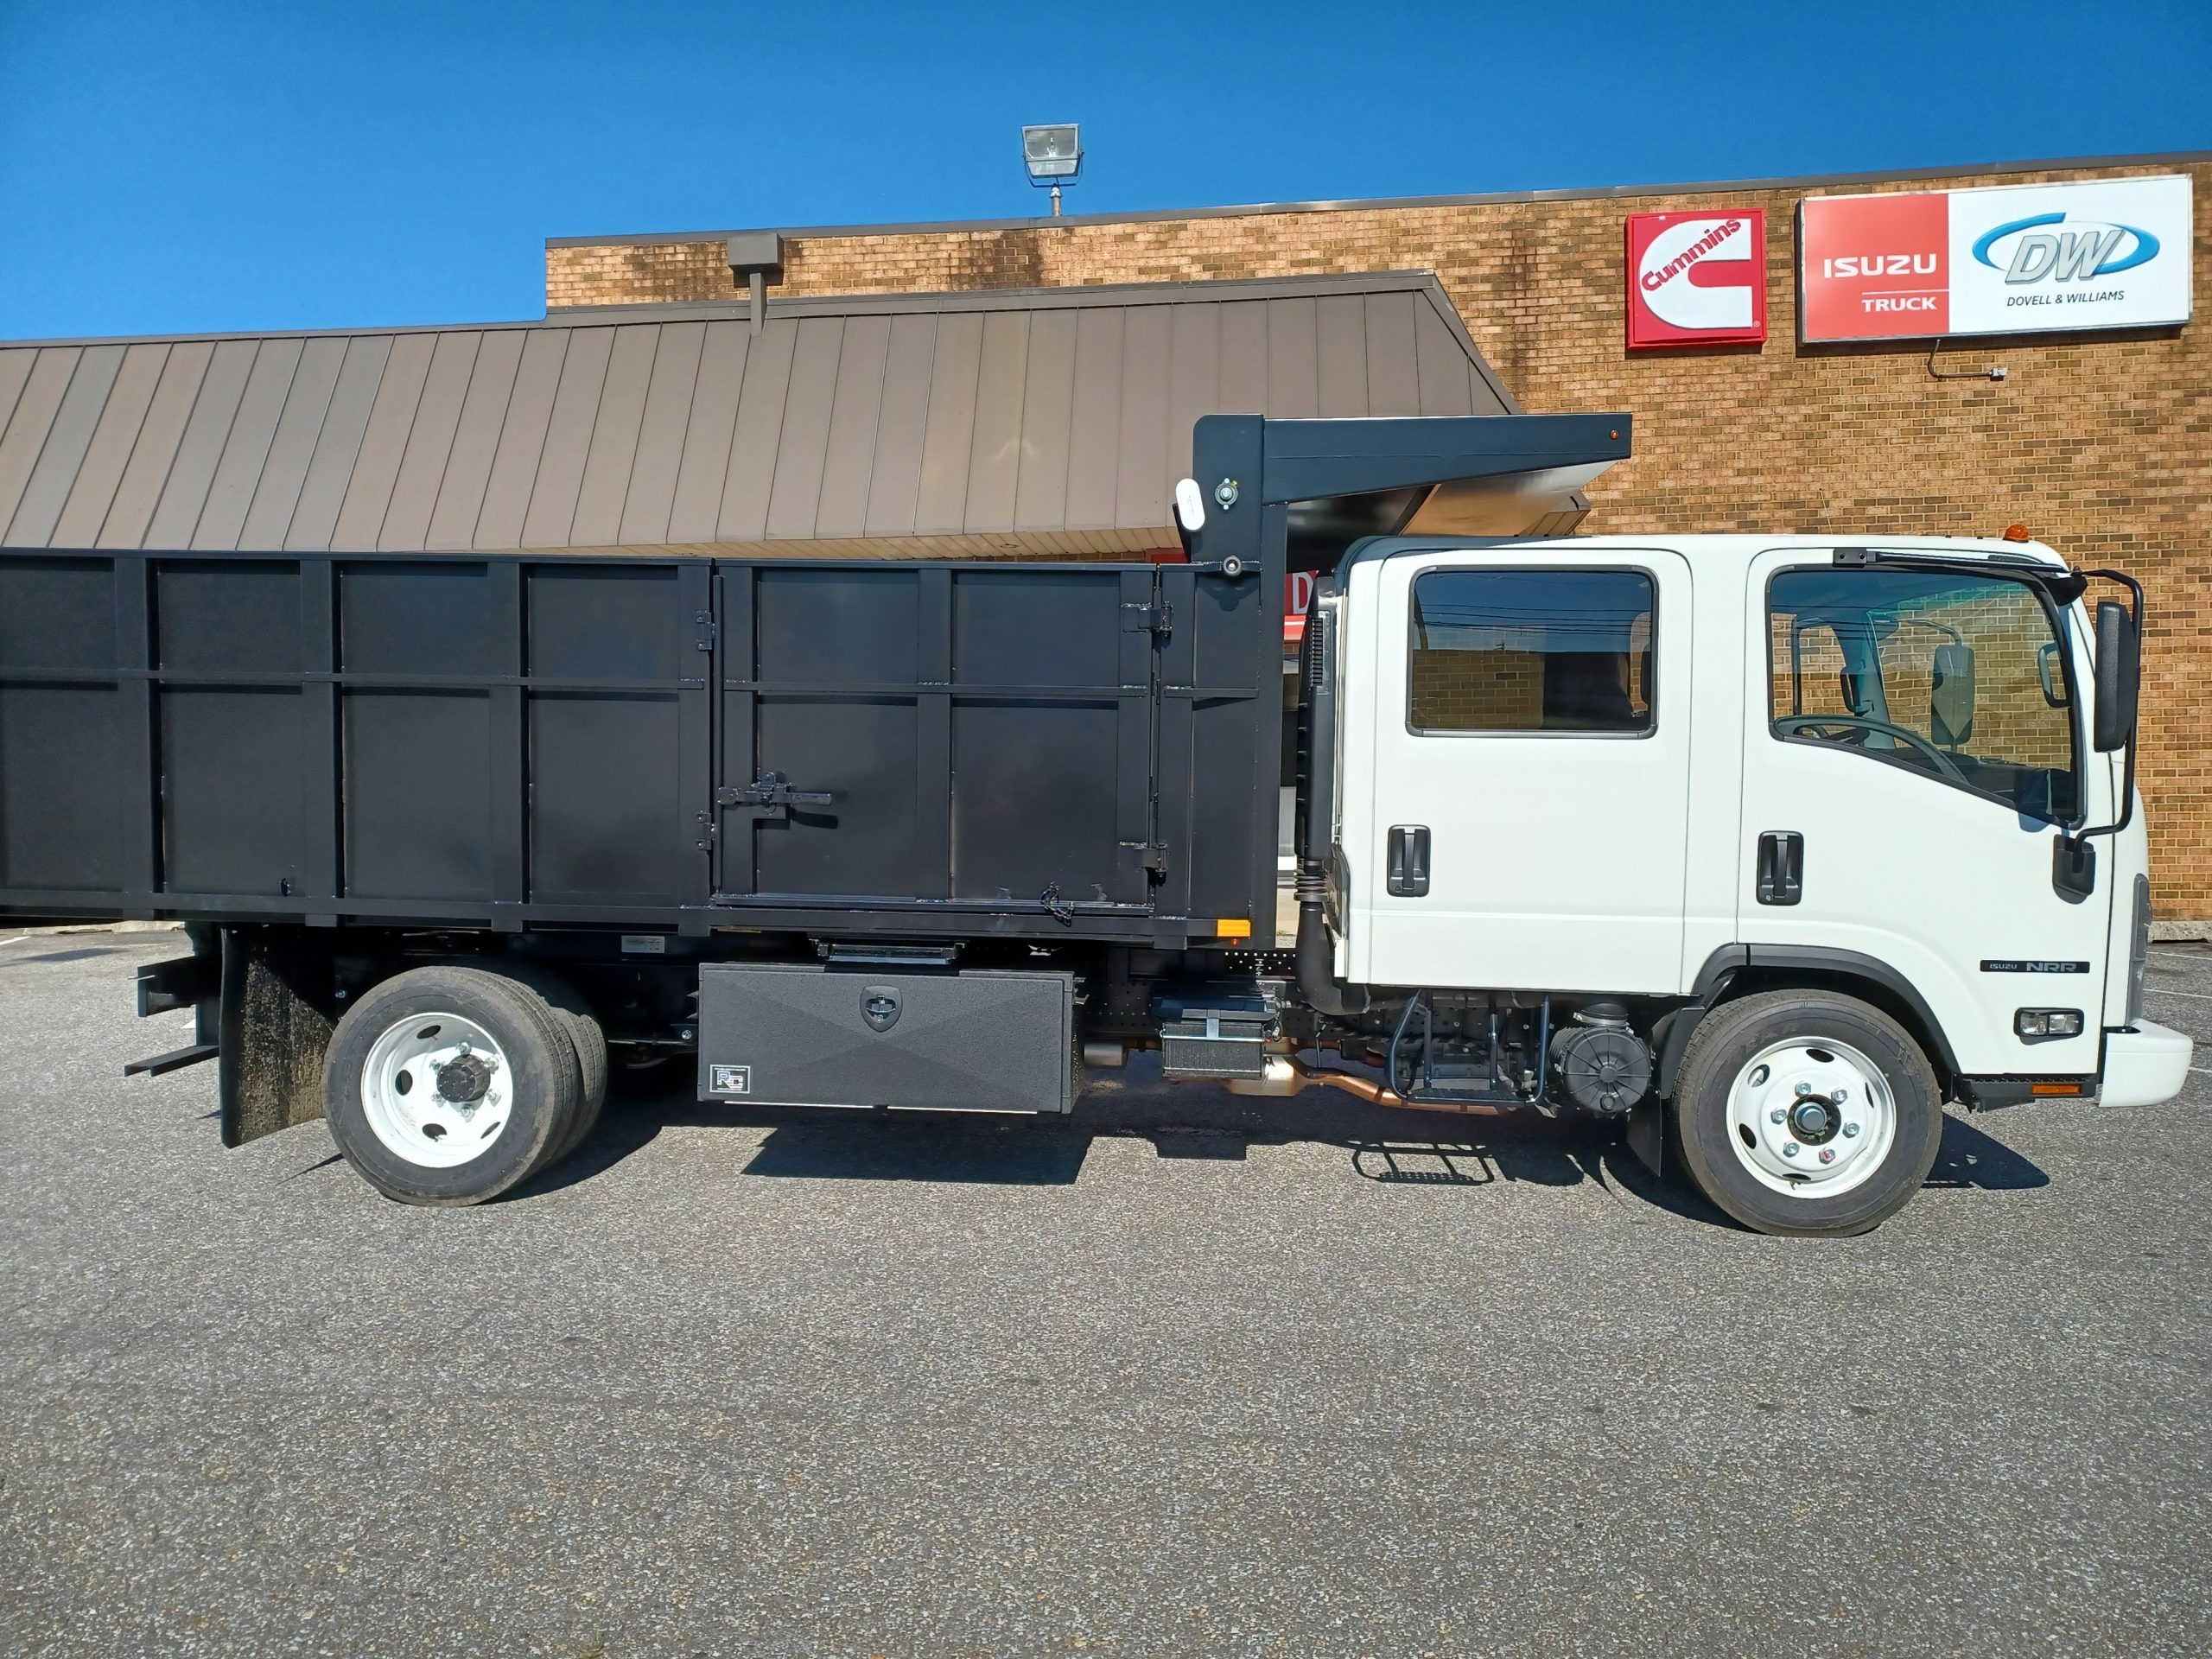 2021 NRR Dump Body 19500gvwr Gas Motor Payload of 8500lbs Crew Cab 7 passenger seating 20210903_092624-scaled